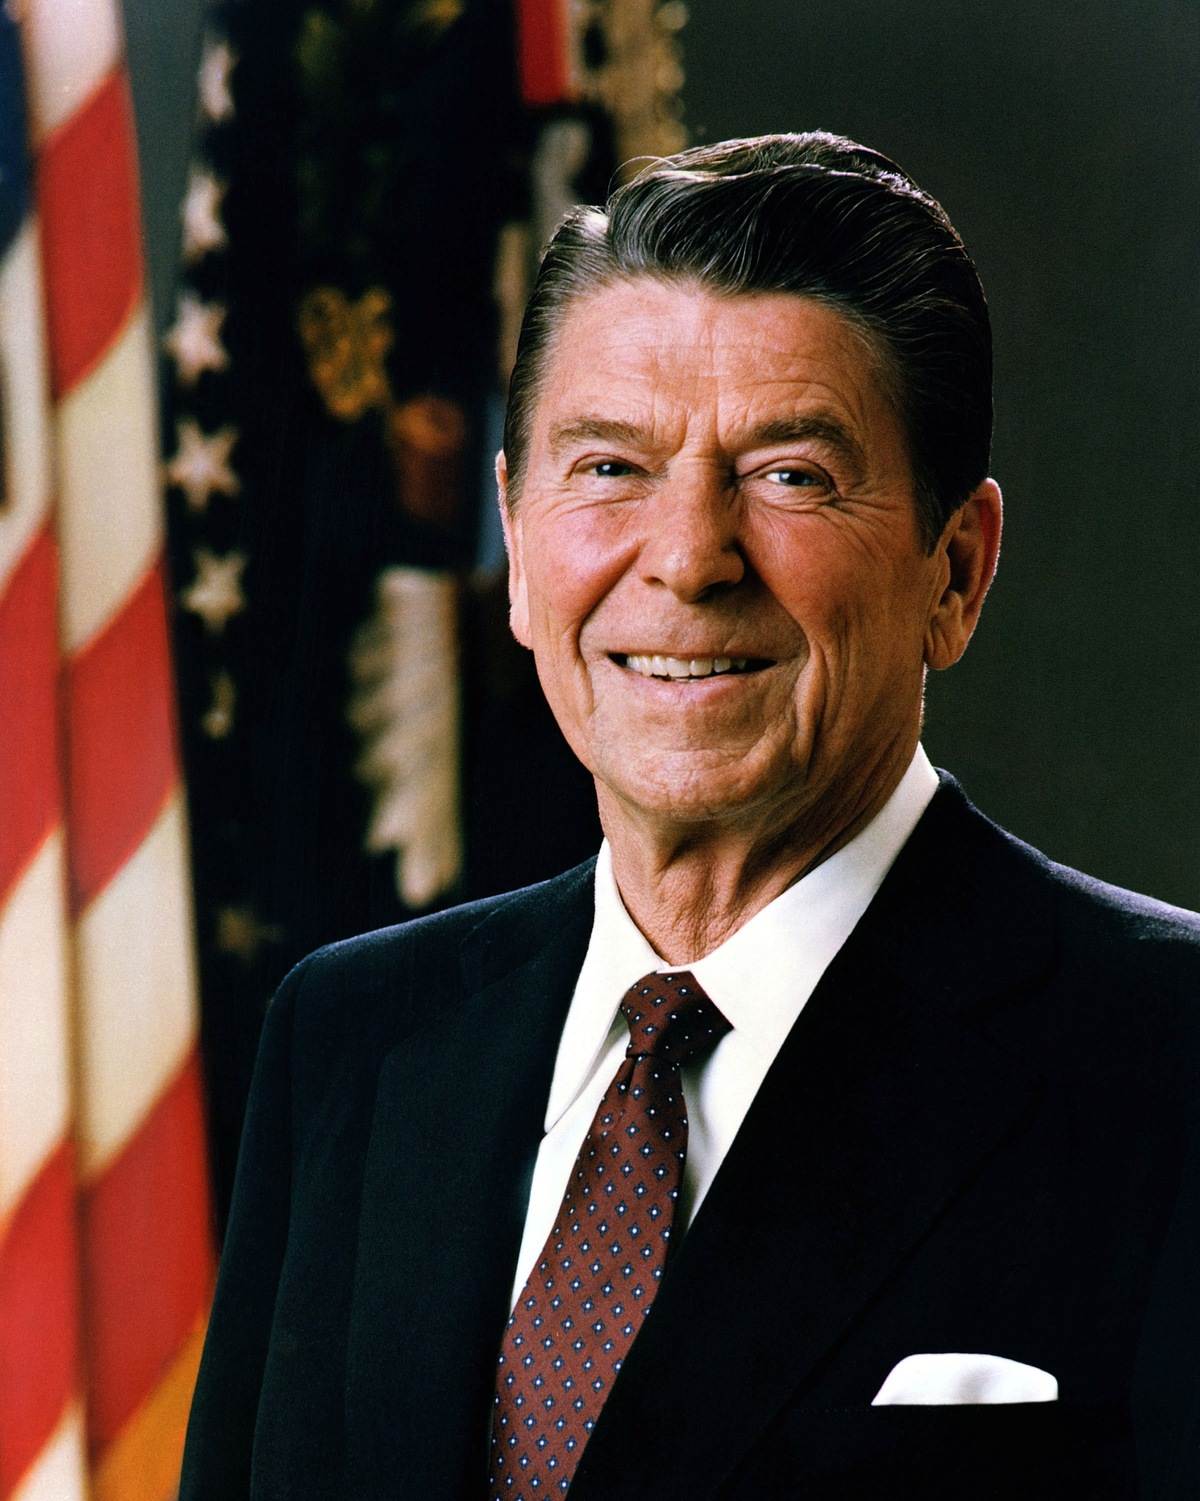 The Middle Class didn't do it alone: According to Wikipedia, President Reagan was known for